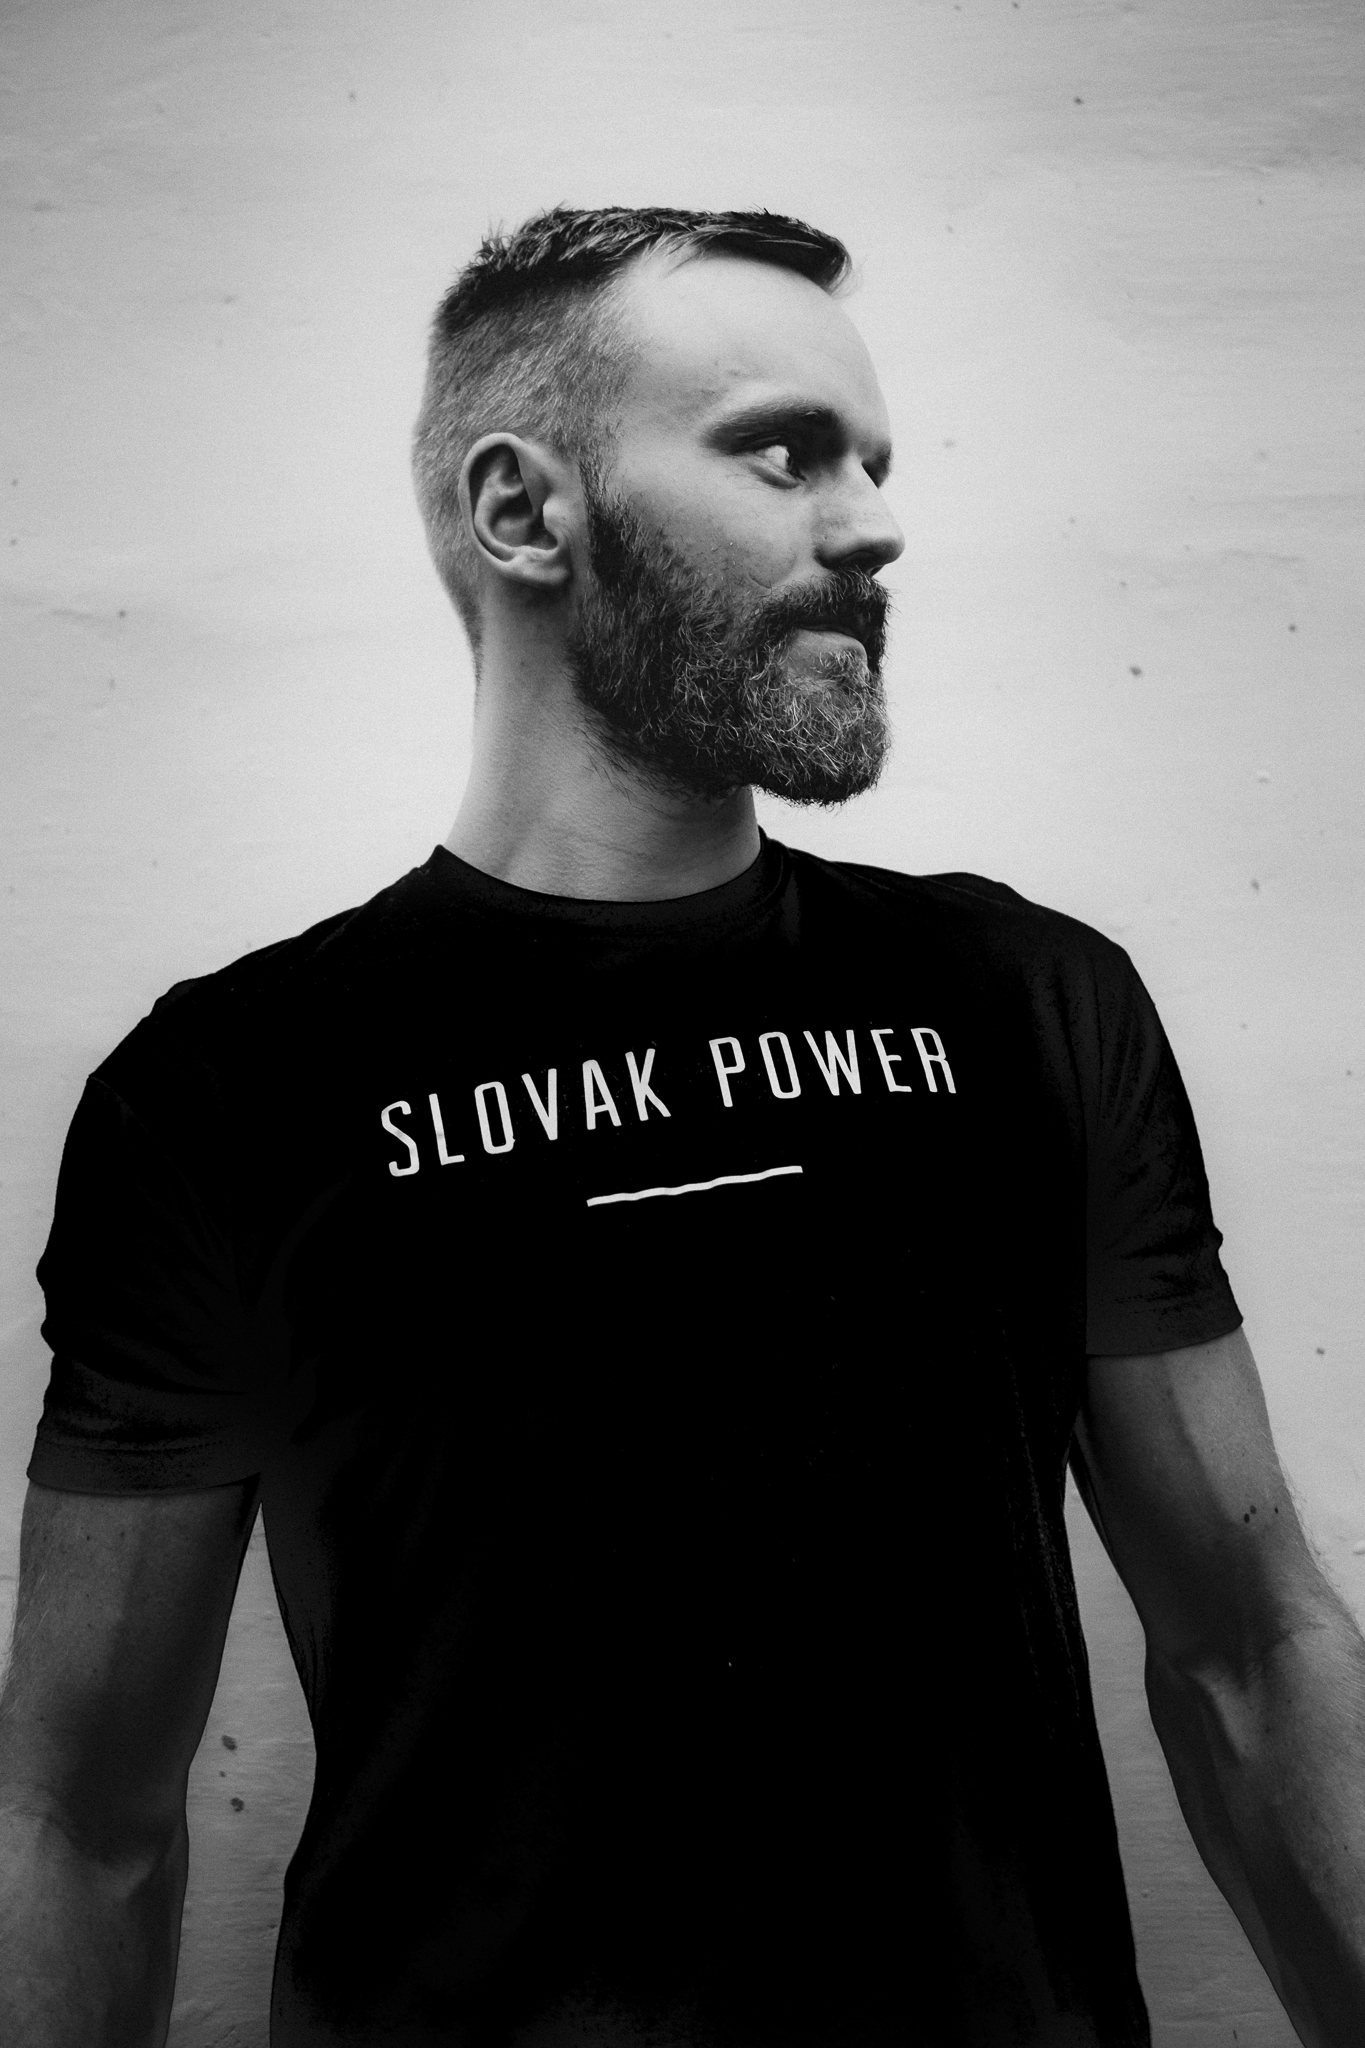 Slovak Power with Niclas